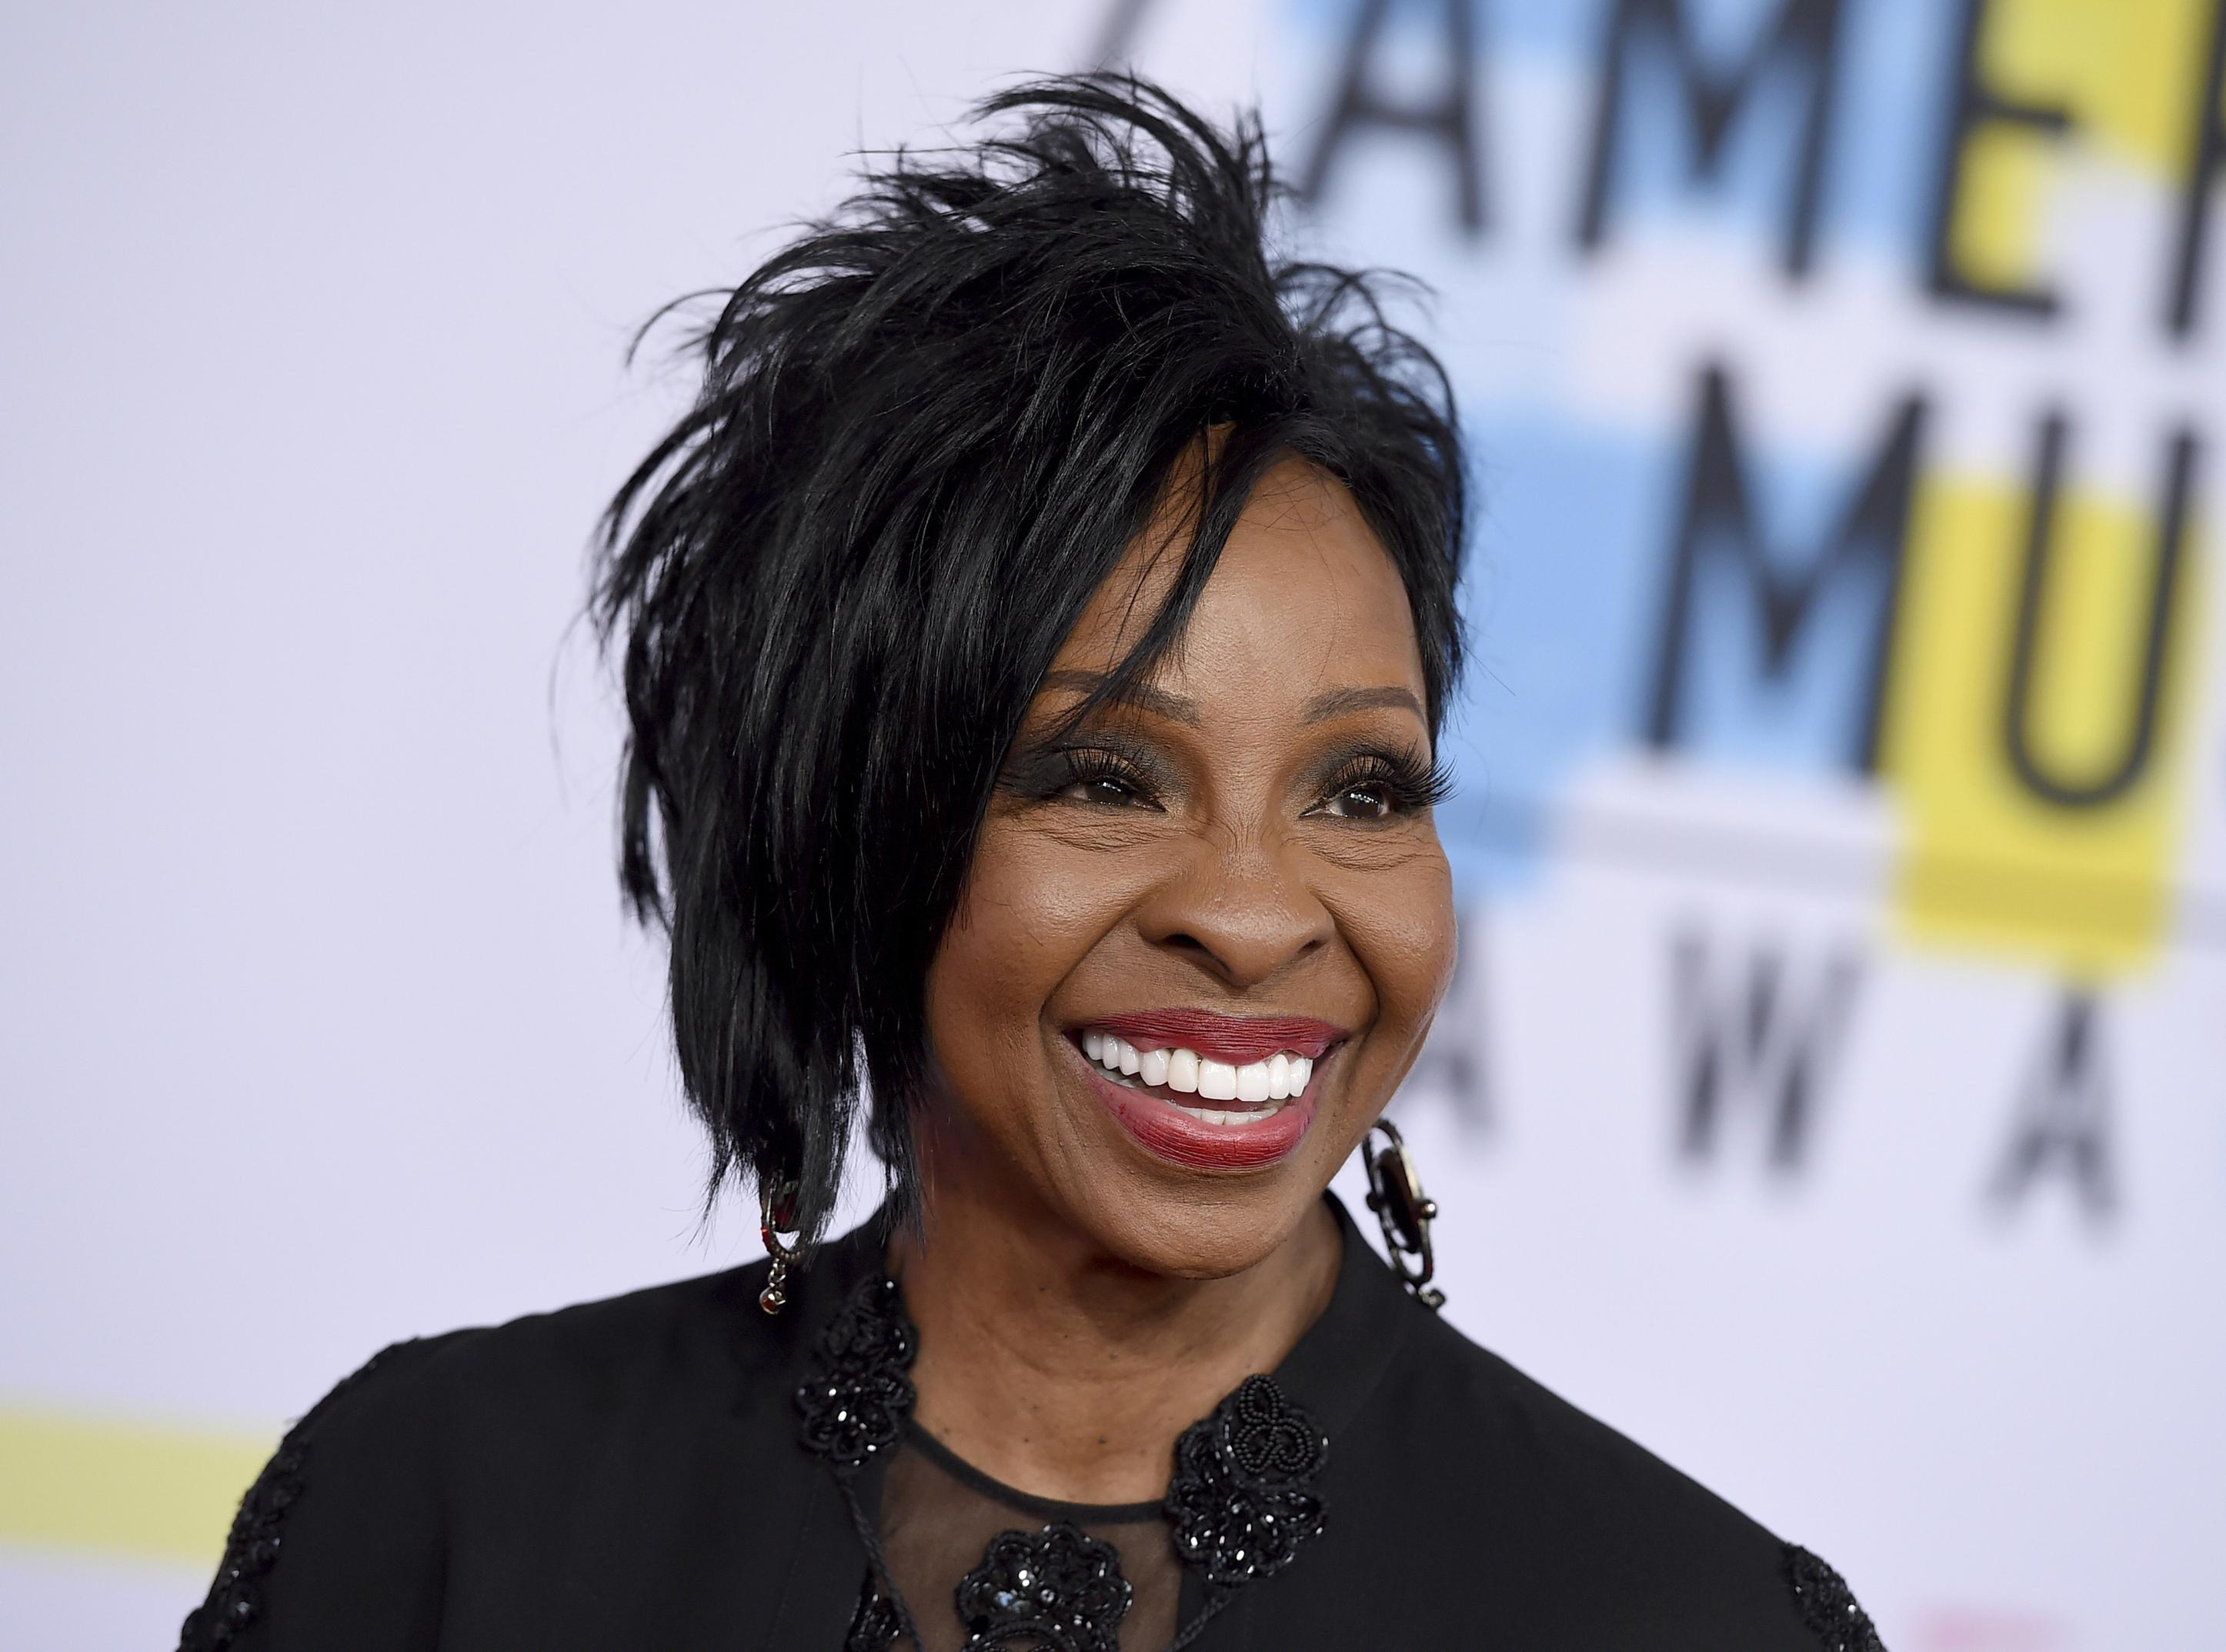 Gladys Knight will sing the US national anthem before the Super Bowl